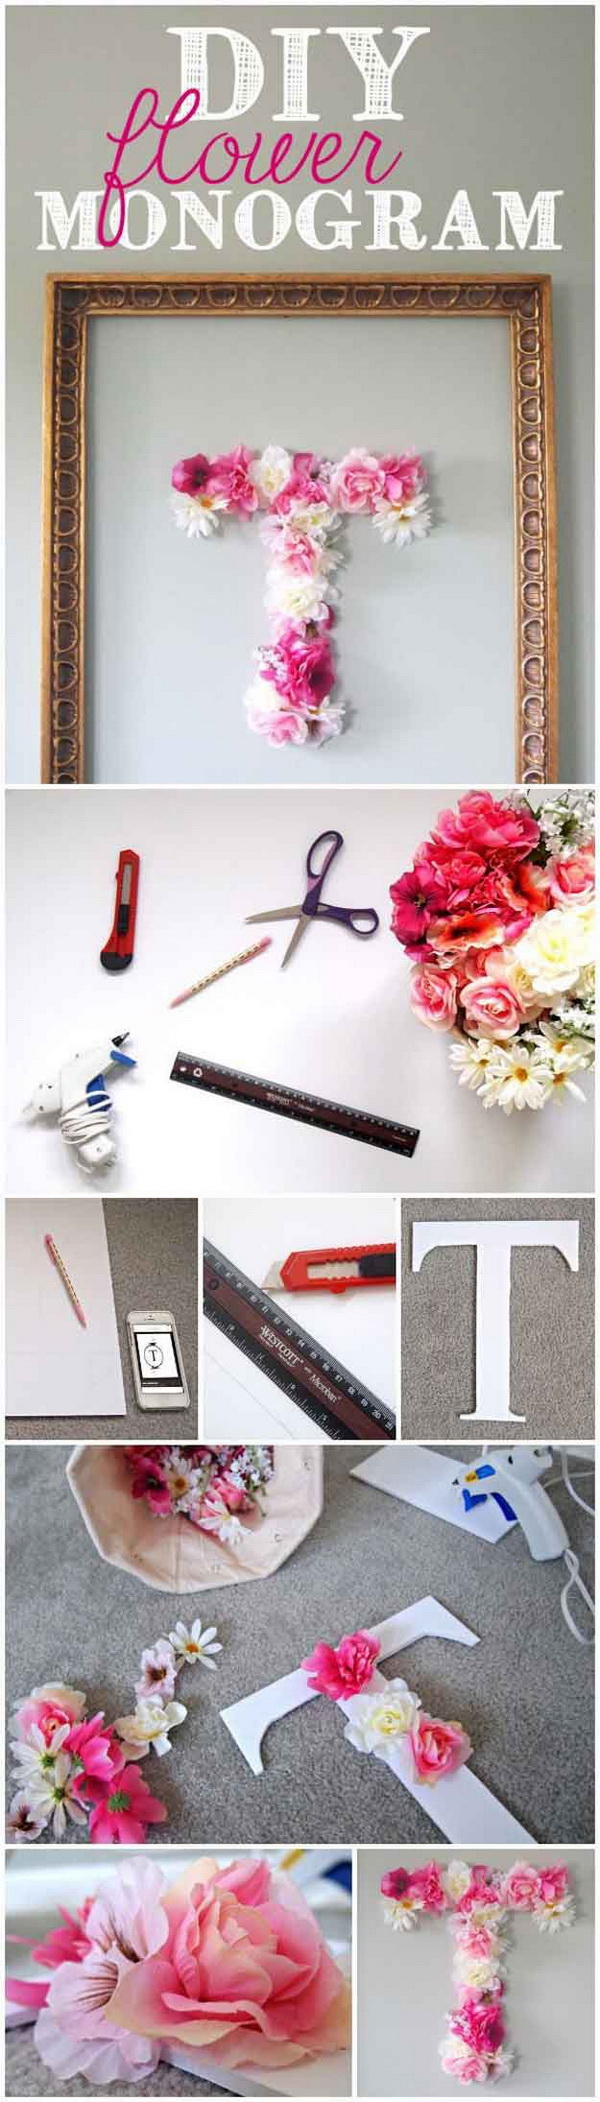 Diy room decor tutorials for teens - Diy Flower Monogram This Cute Monogram Made With Faux Flowers Is Easy And Fun To